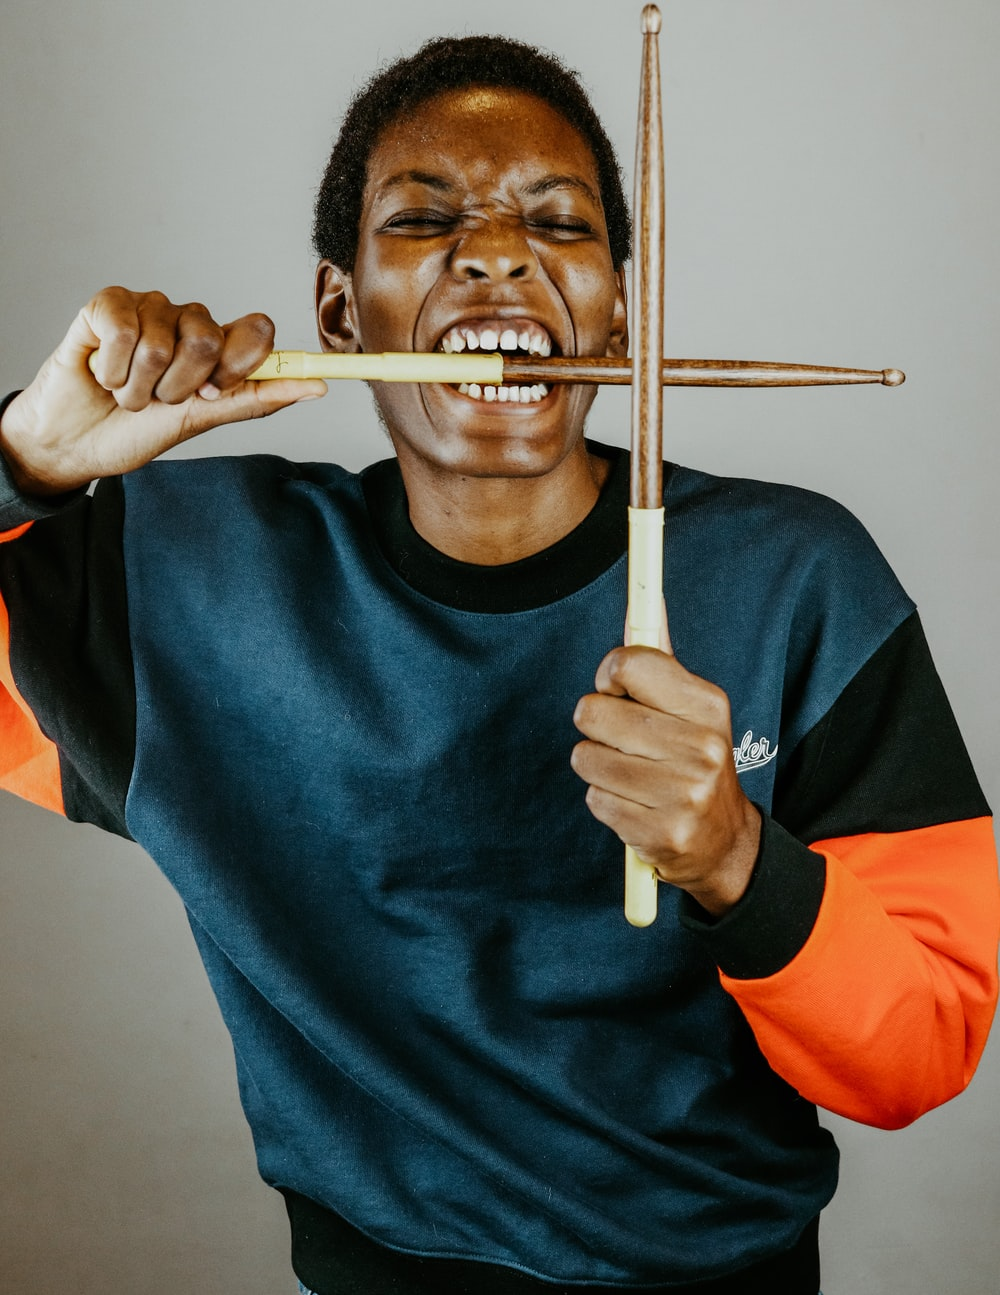 man in blue sweater holding brown wooden stick